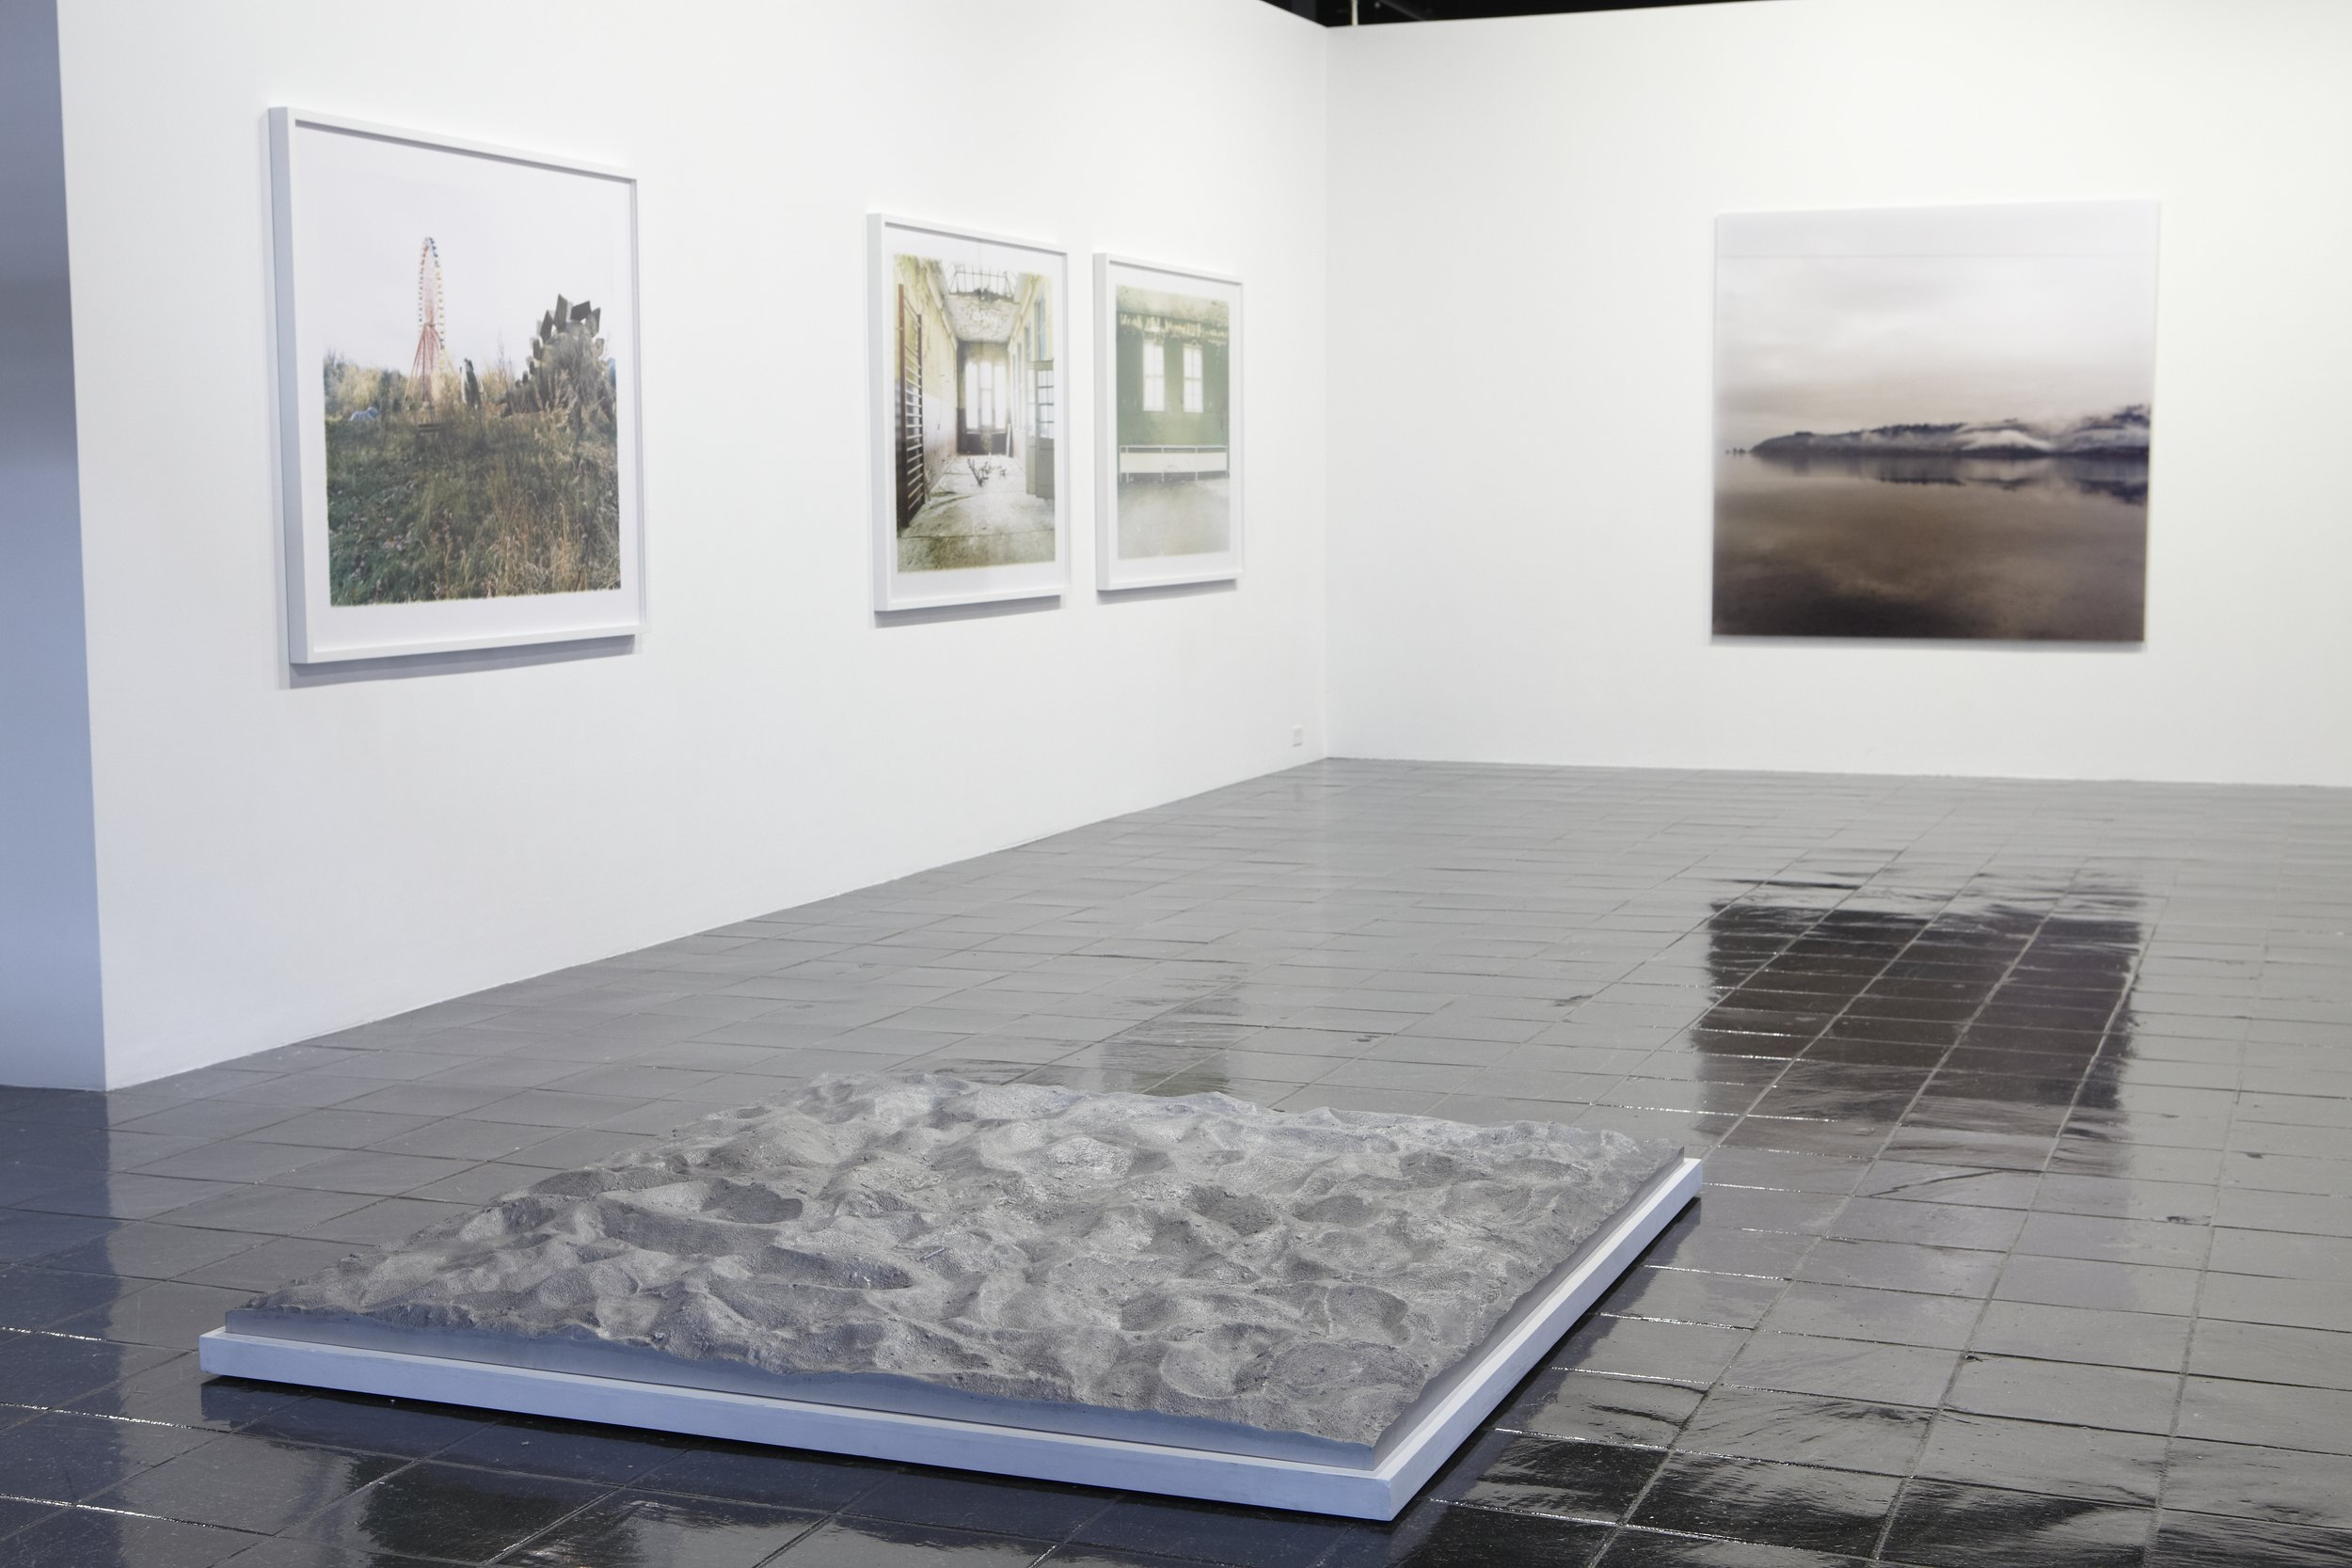 Sarah Schönfeld, from the series  Wende Gelände , 2007. C-print, 48 x 60 inches. Courtesy of the artist and Kunstagenten, Berlin. Installation view. Foreground: Michael Brown,  The People's Playground , 2008. Cast aluminum, 71.75 x 69 x 2 inches. Courtesy of the artist and Yvon Lambert Paris, New York, London.